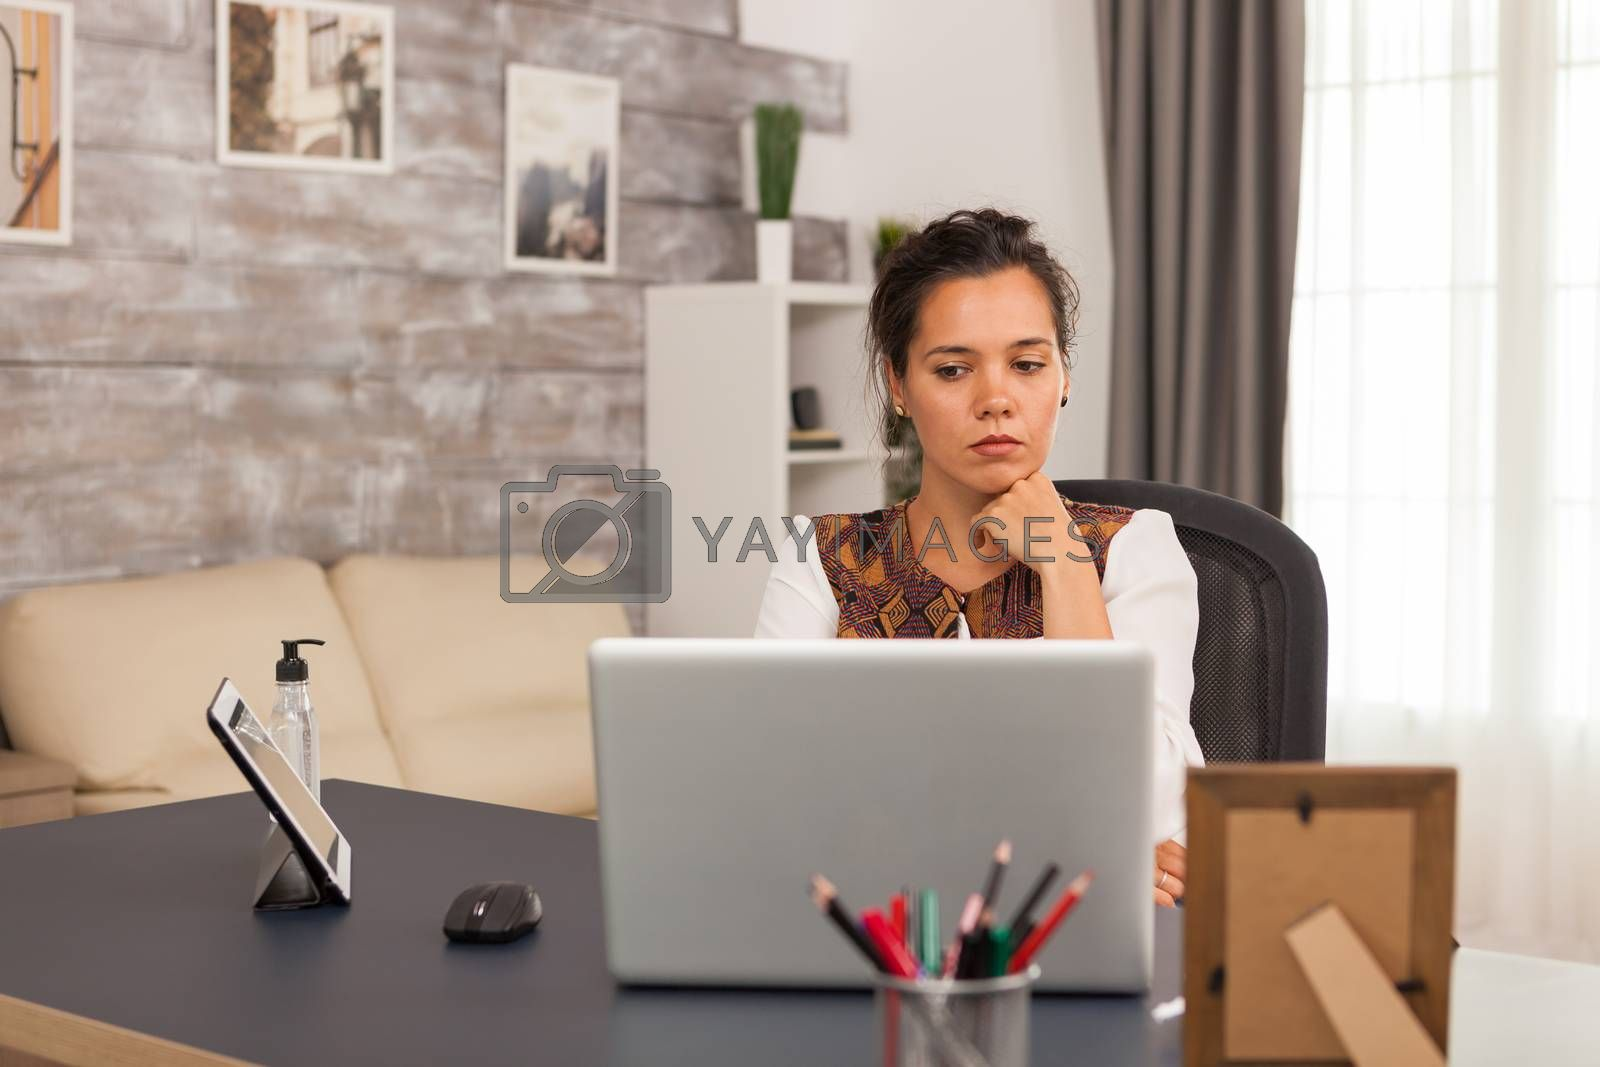 Focused female freelancer while working on laptop from home office.